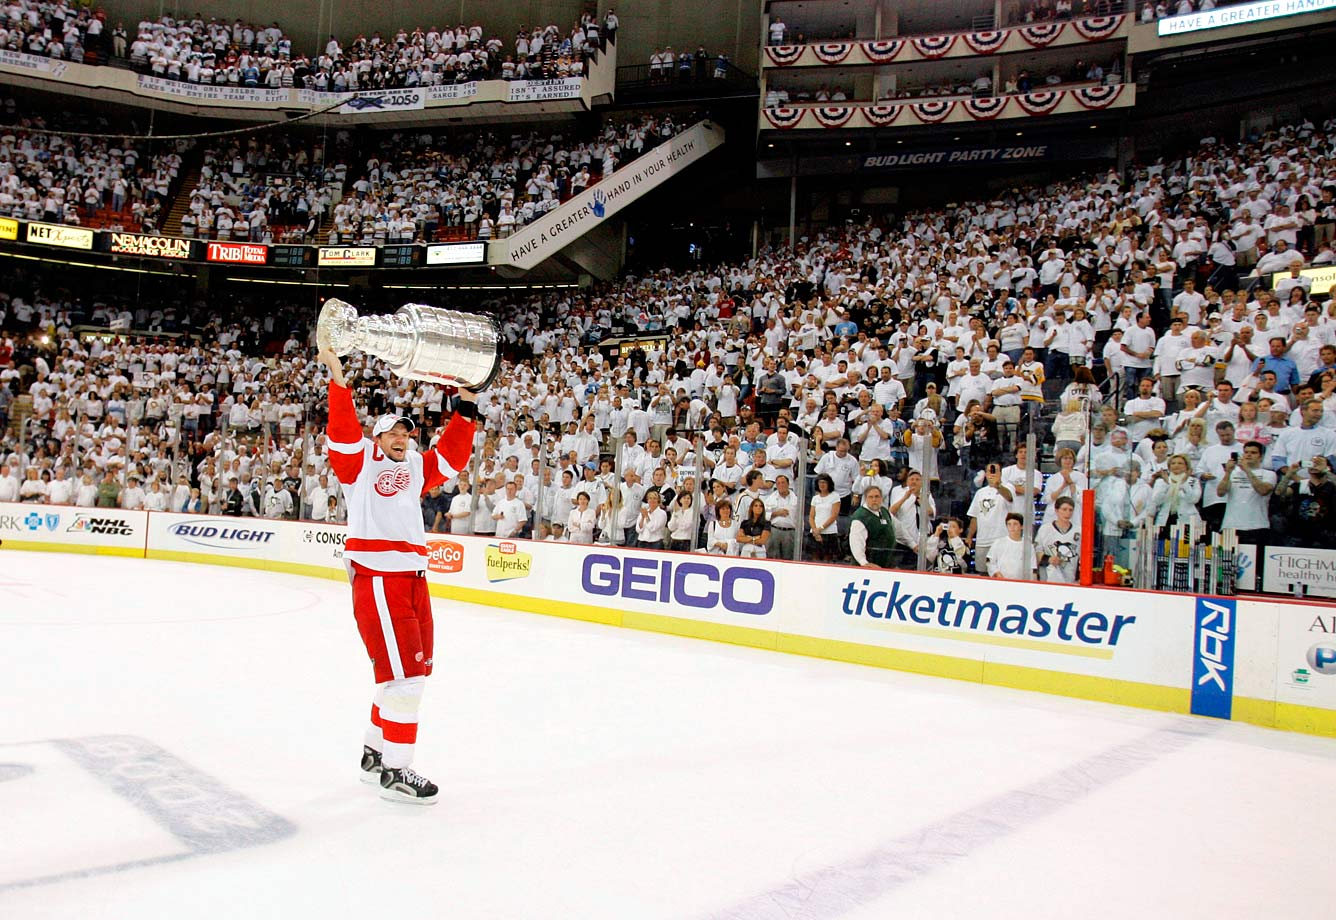 The superb Red Wings defenseman is the first European-born and trained player to captain a Stanley Cup champion. Here he skated with the chalice as the crowd in Pittsburgh looked on at the conclusion of Game 6.